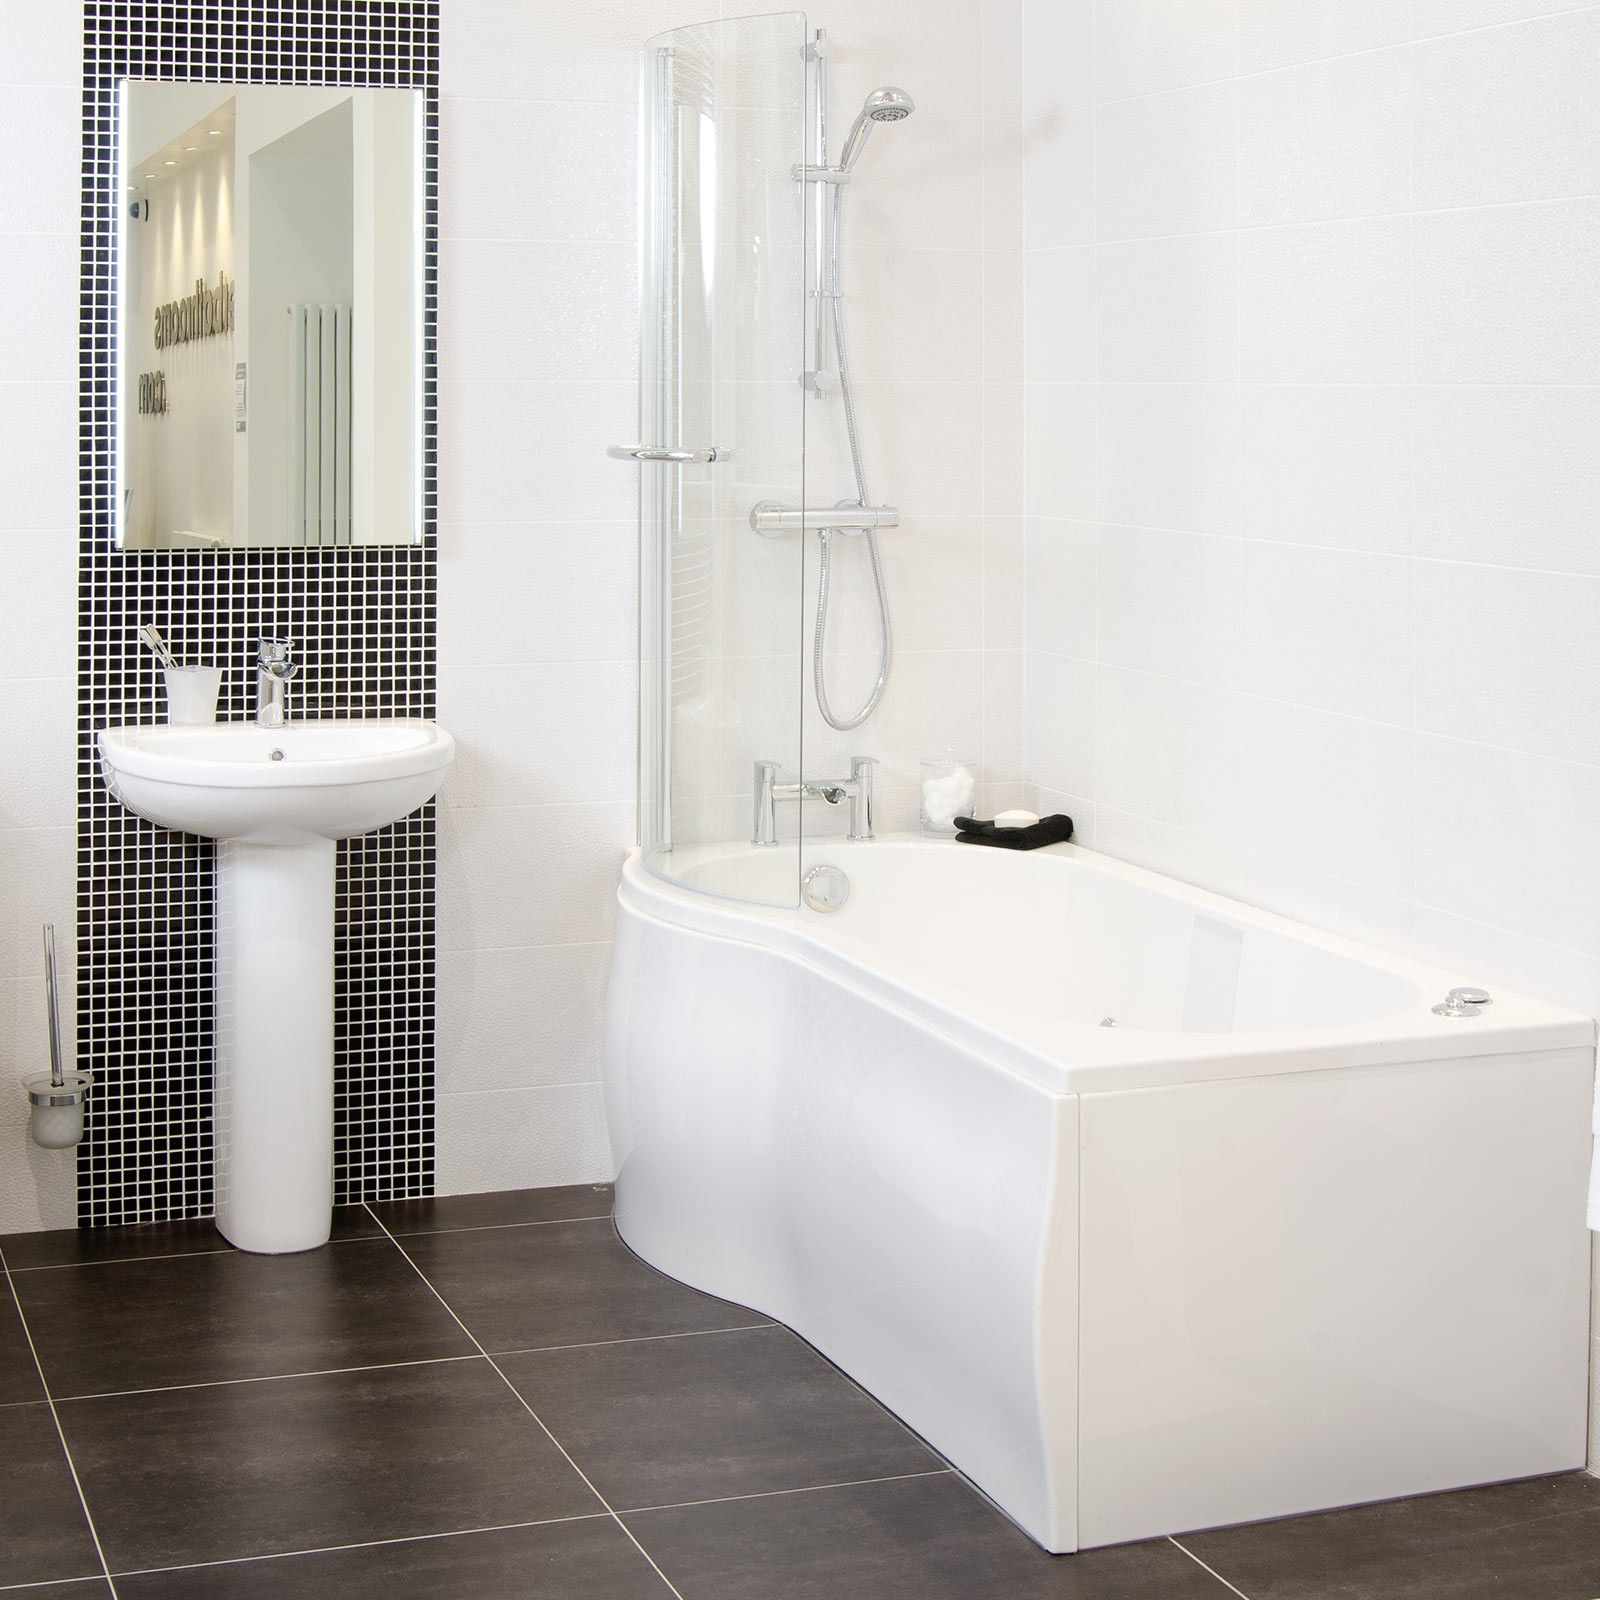 Capua Wall Tile - Black And White Bathroom Ideas - White Tiles ...